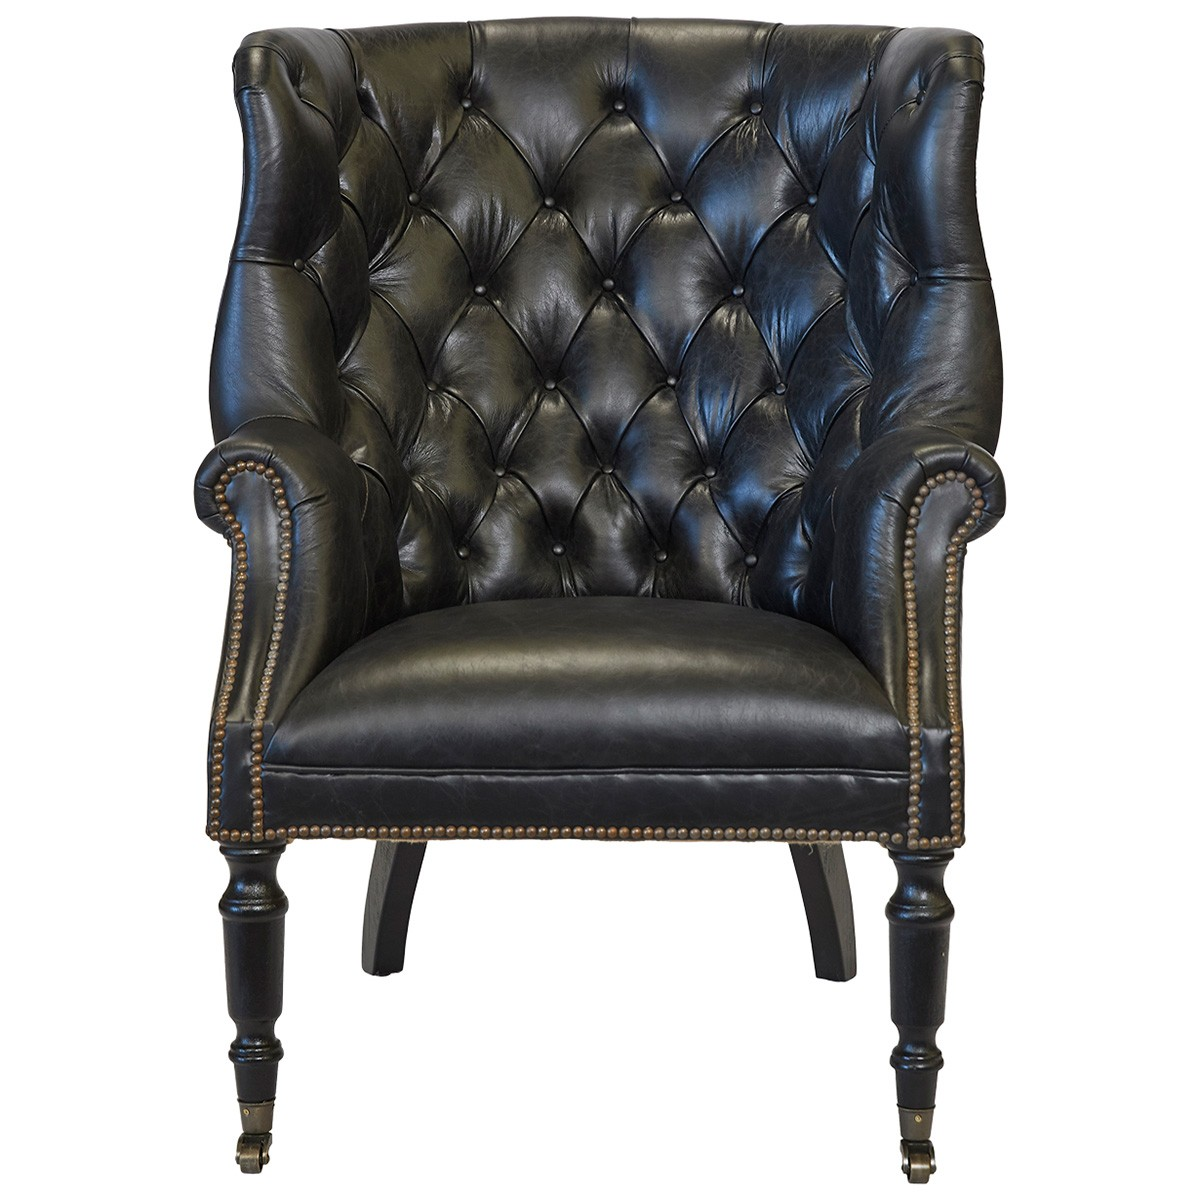 Gerrard Top Grain Leather Wingback Armchair with Castors, Black